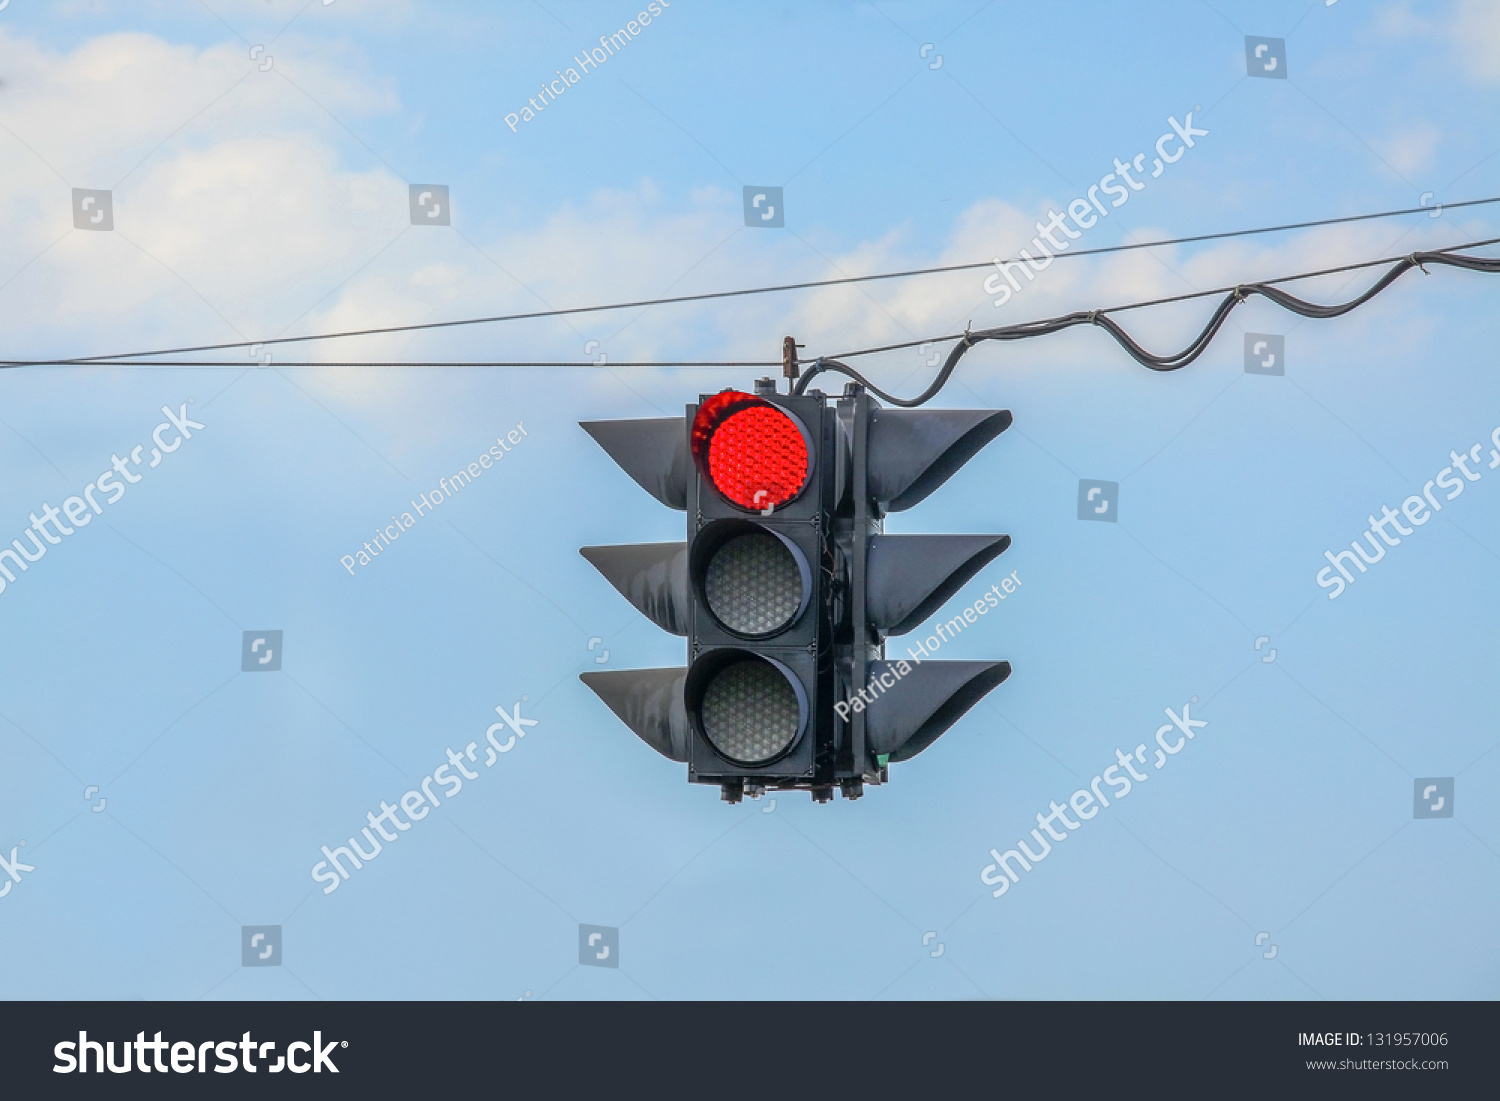 hight resolution of traffic light on red hanging on wires in the air